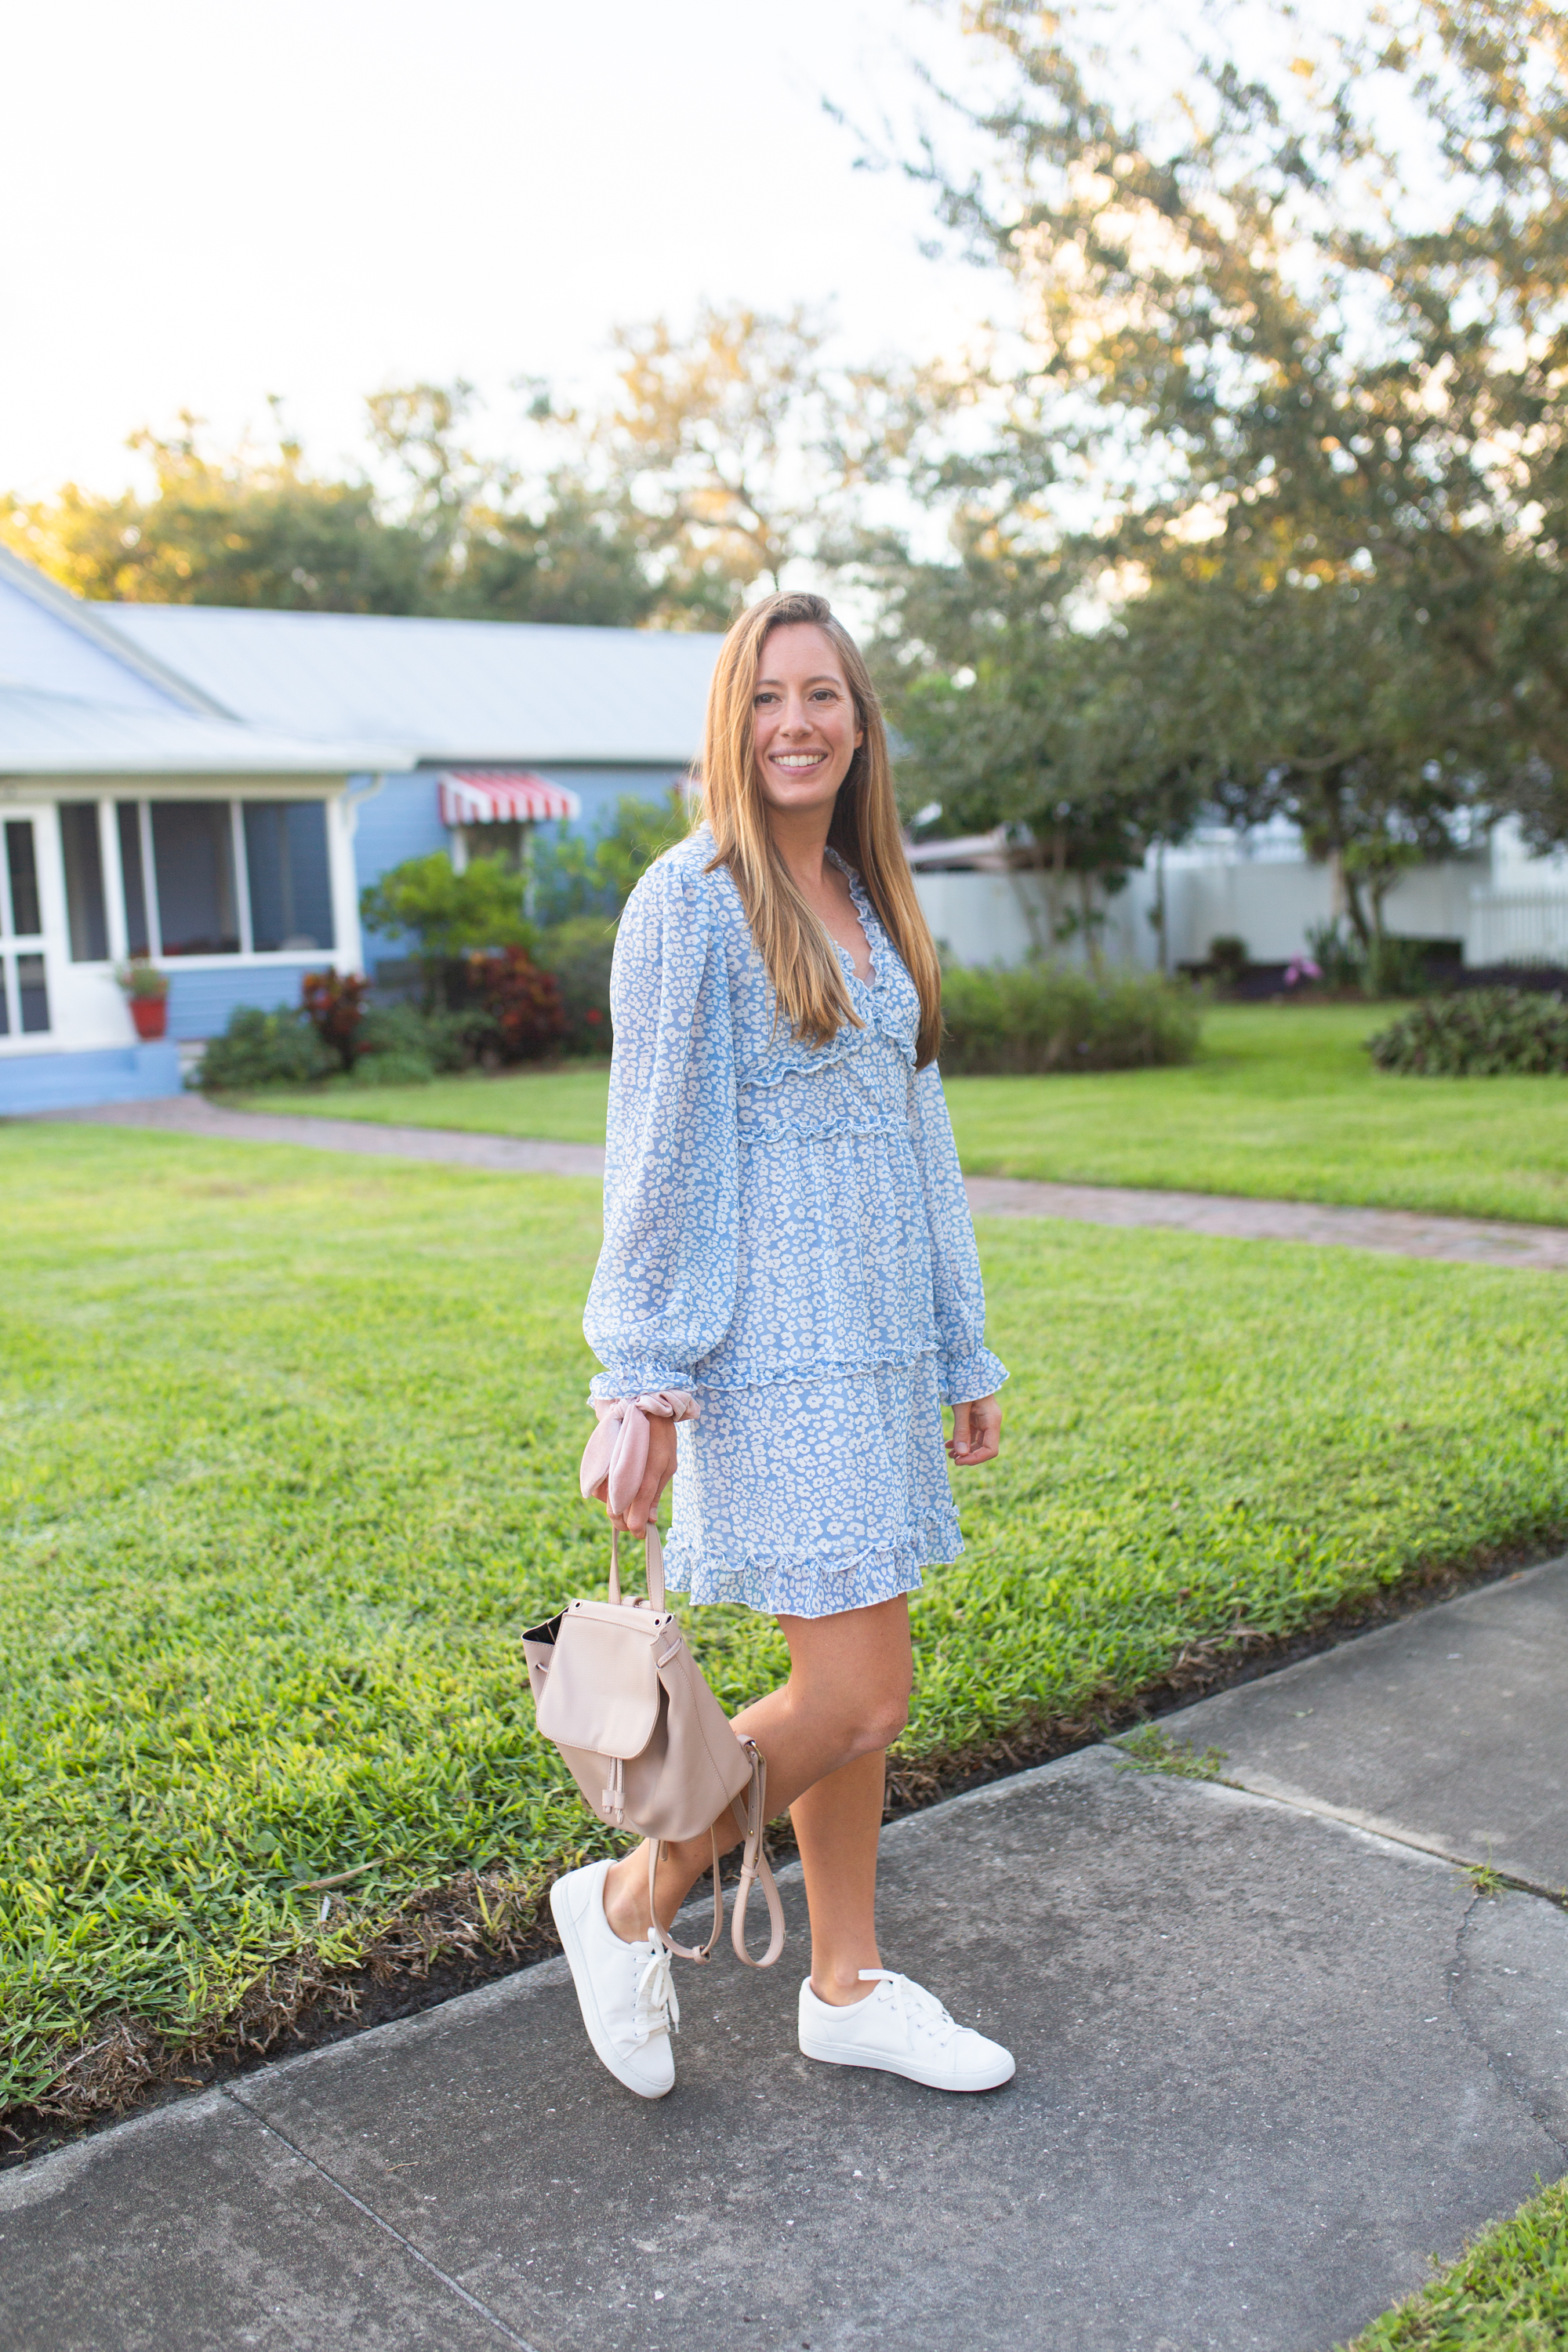 White Sneakers Outfit / Where to Buy the Best White Sneakers / White Sneakers with Dresses / How to Style White Sneakers  / White Sneakers Outfit Winter / Blue Dress - Sunshine Style, A Florida Fashion and Lifestyle Blog by Katie